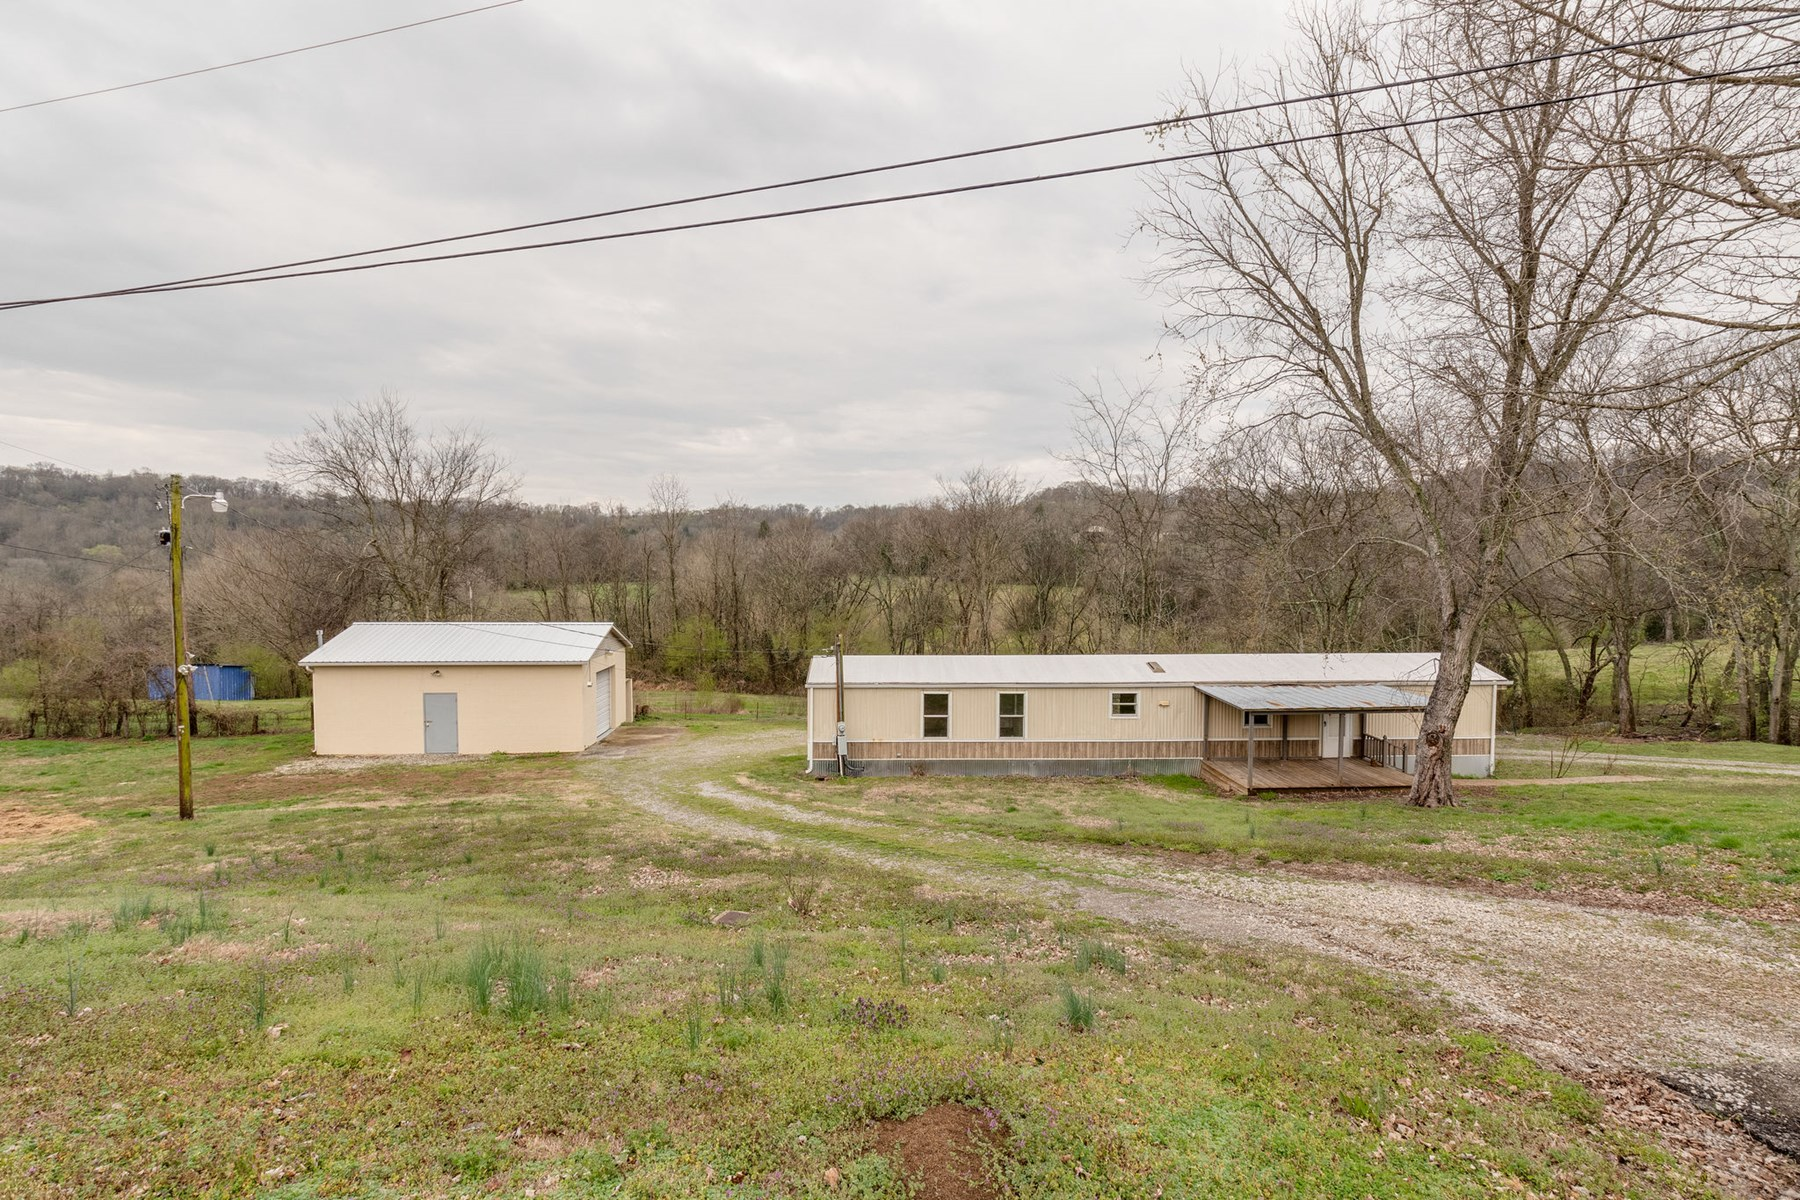 Home for Sale on Country Setting, in Columbia, Tennessee